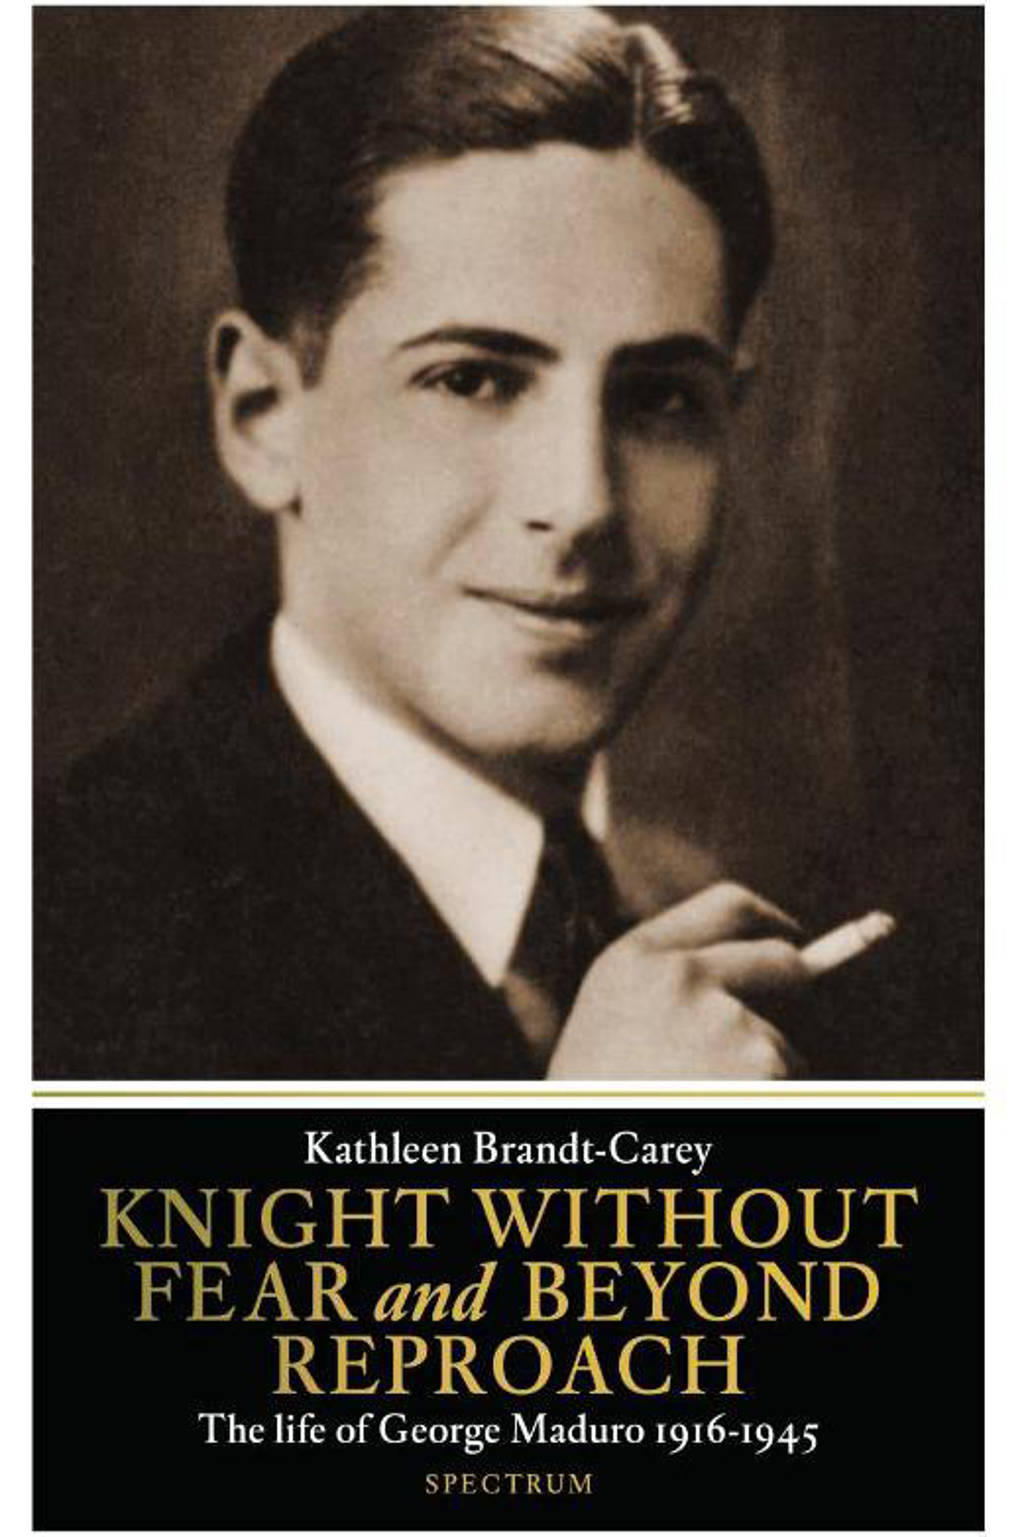 Knight without fear and beyond reproach - Kathleen Brandt-Carey